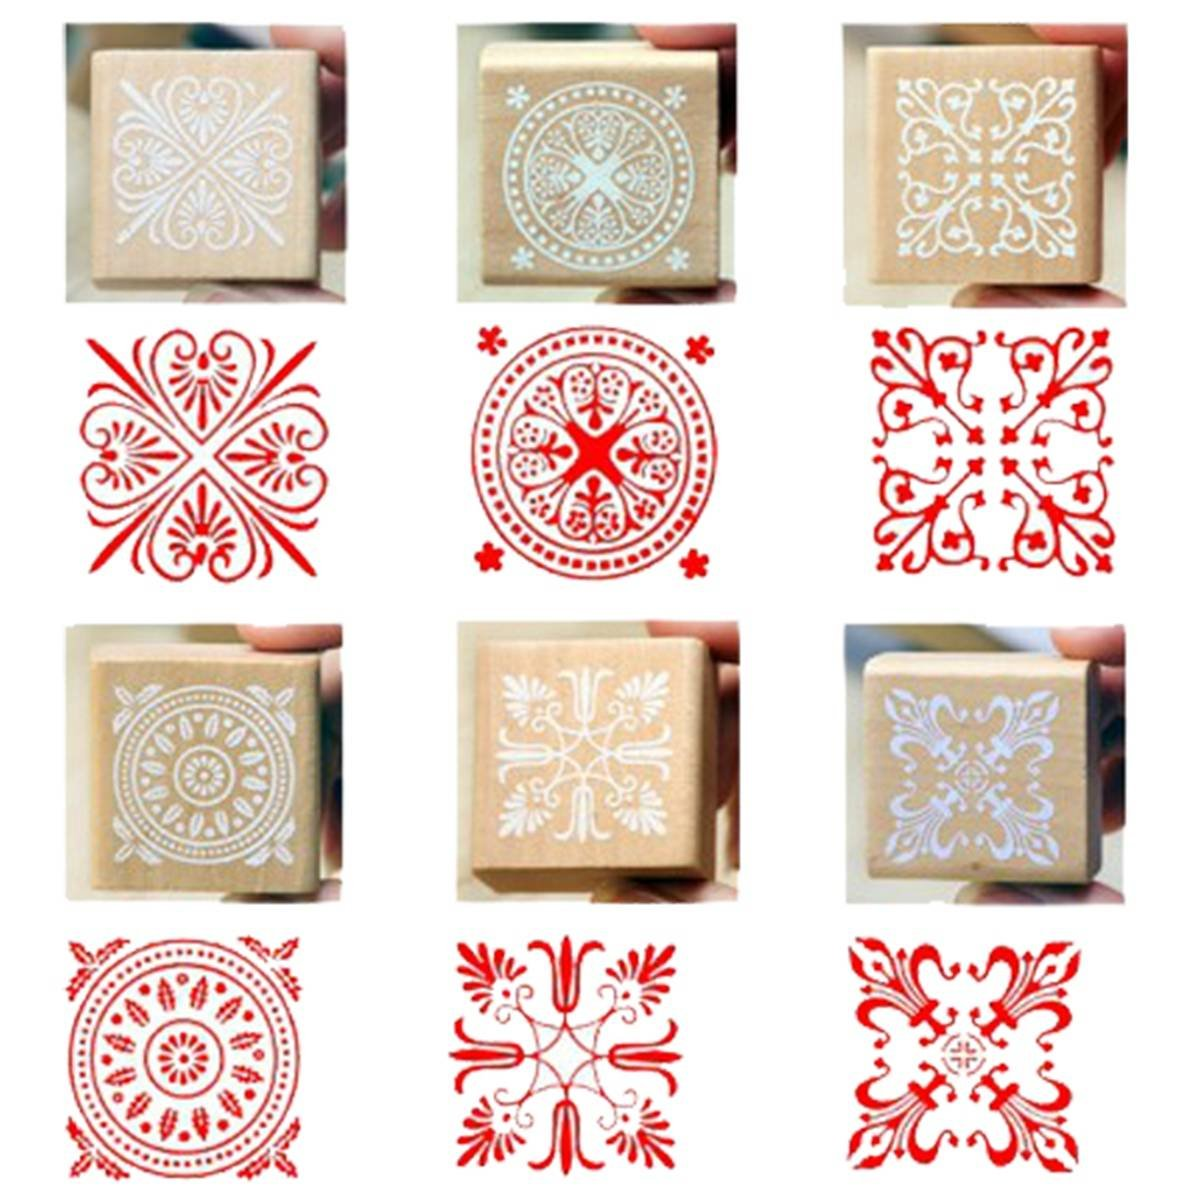 6 Assorted Wooden Stamp Rubber Seal Square Handwriting DIY Craft Flower Lace парафин oneball 4wd warm assorted